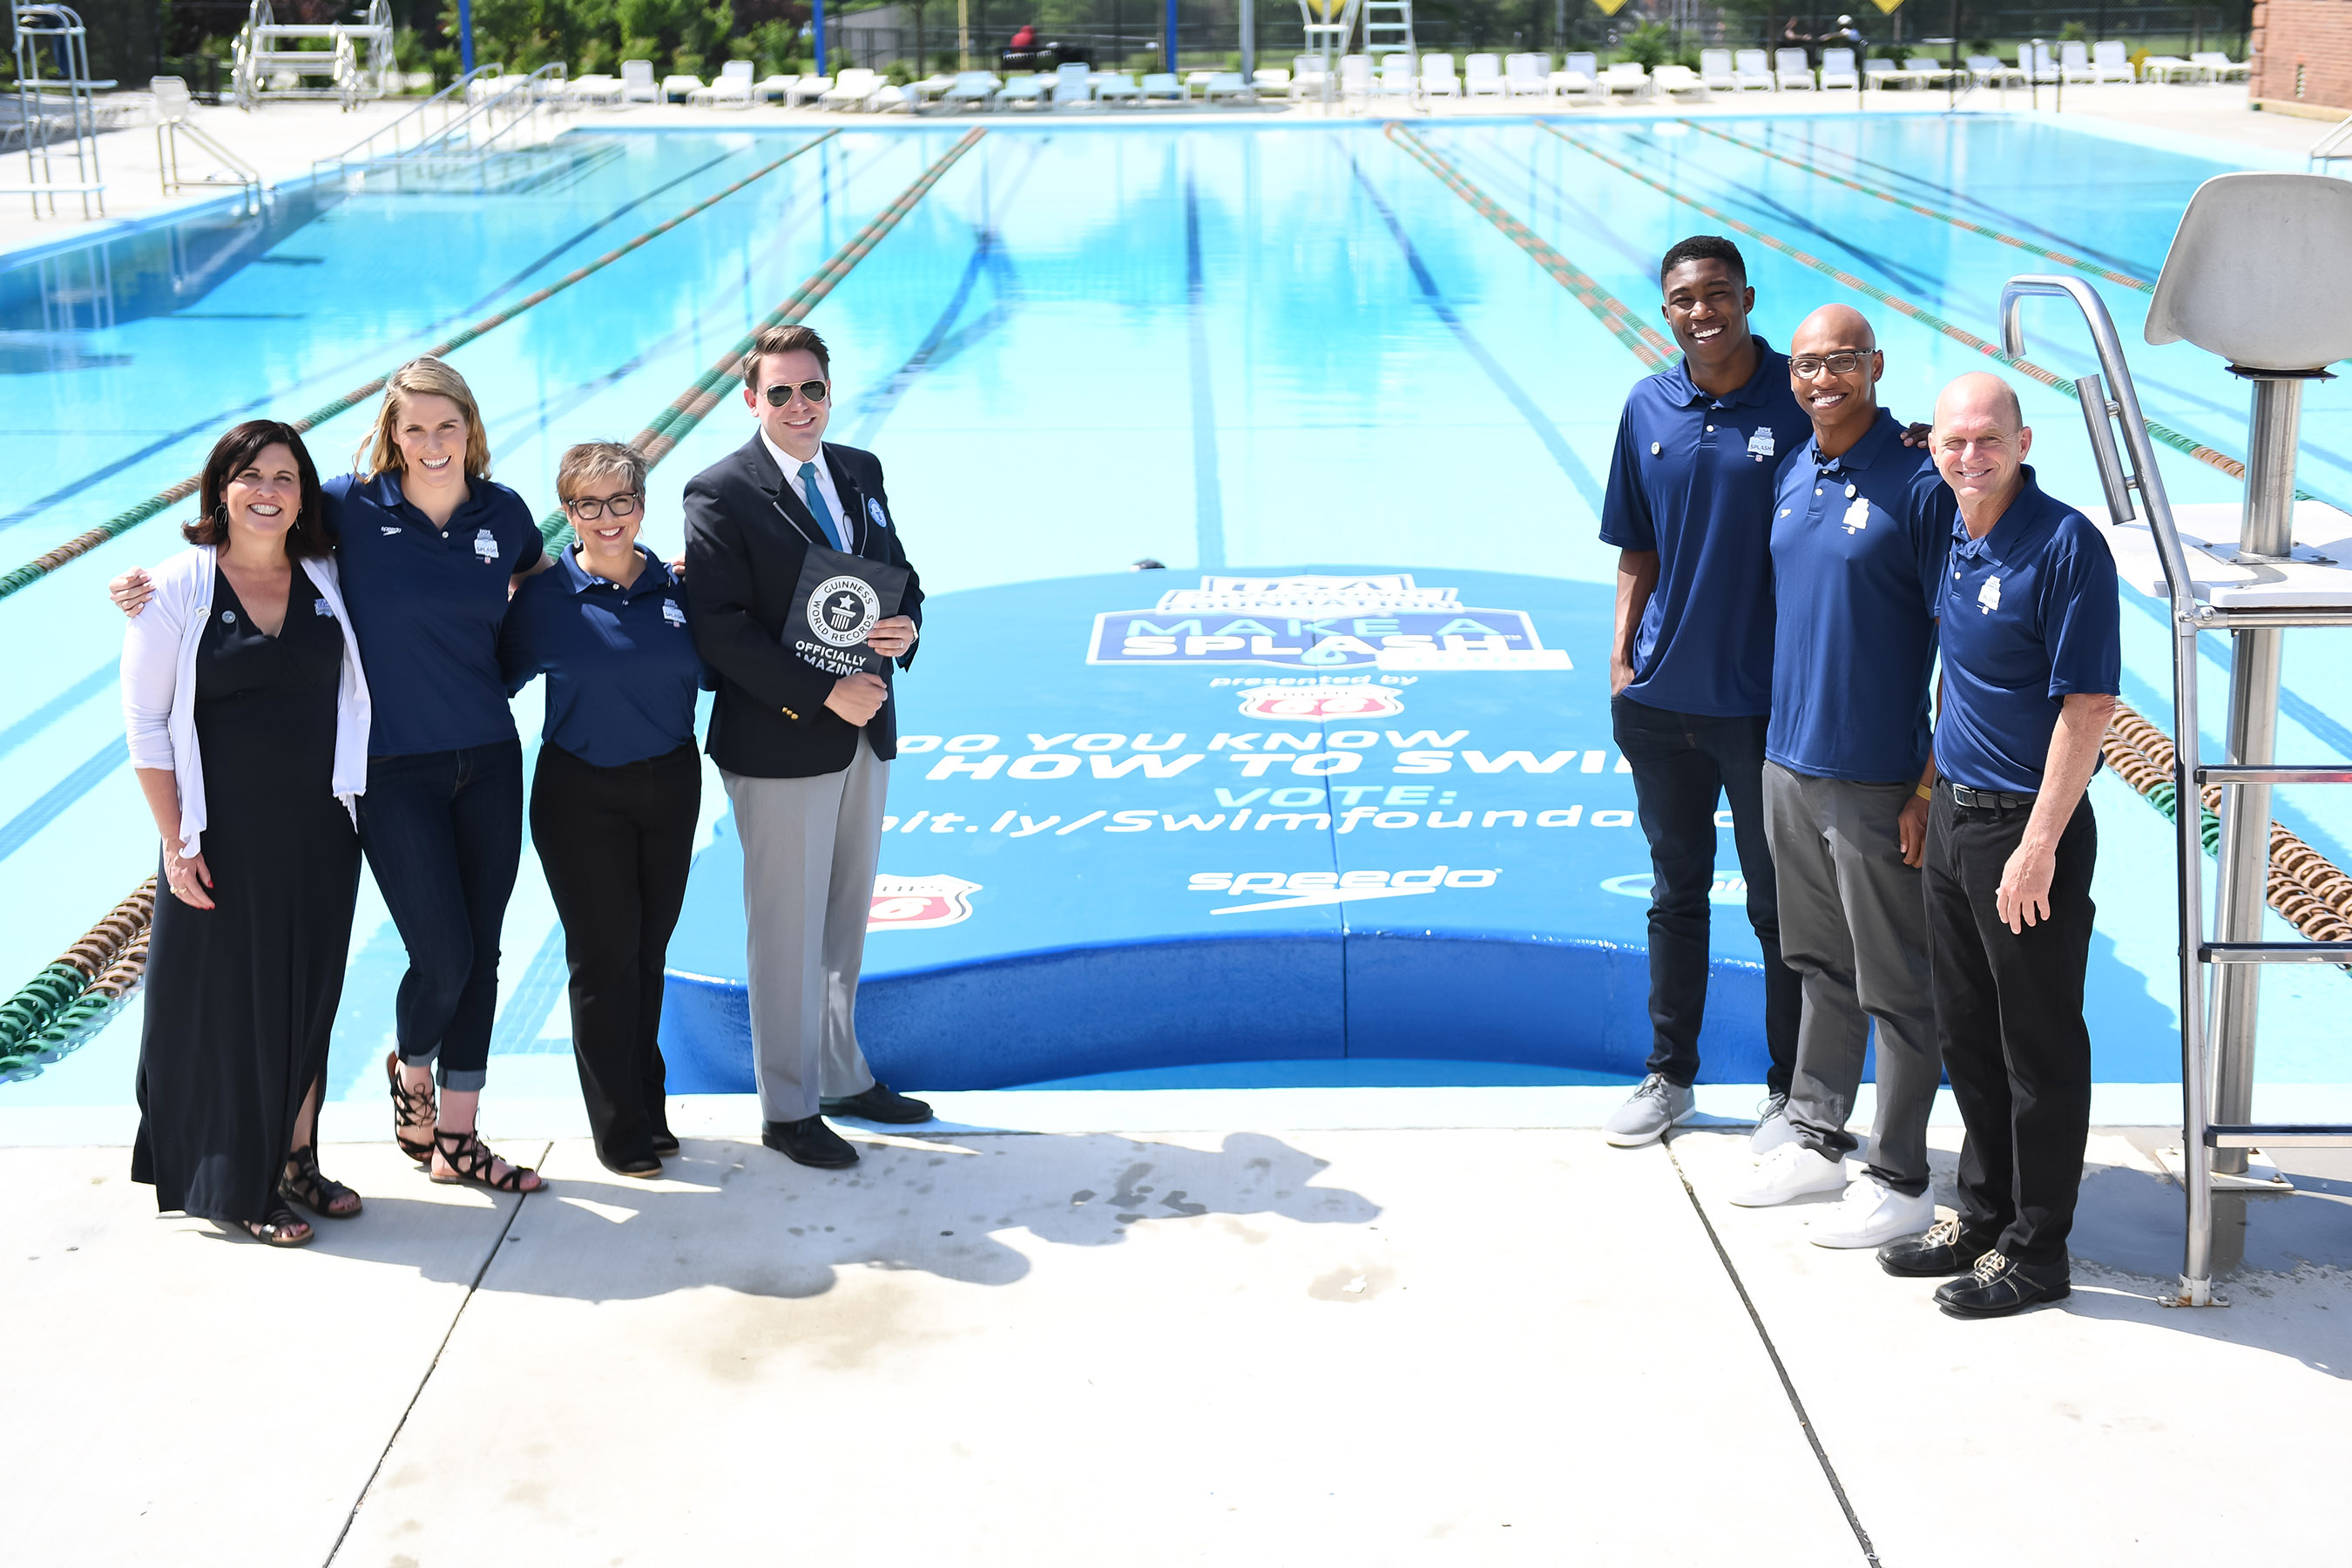 PHOTO CREDIT: © Mike Lewis / USA Swimming Foundation – USA Swimming Foundation Executive Director Debbie Hesse, USA Swimming Foundation ambassador Missy Franklin, Phillips 66 Manager Tami Talbert Walker, adjudicator Michael Empric, World Junior Champion swimmer Reece Whitley, Olympians Cullen Jones and Rowdy Gaines flank the GUINNESS WORLD RECORDS® Largest Kickboard during the USA Swimming Foundation's Make a Splash tour presented by Phillips 66.